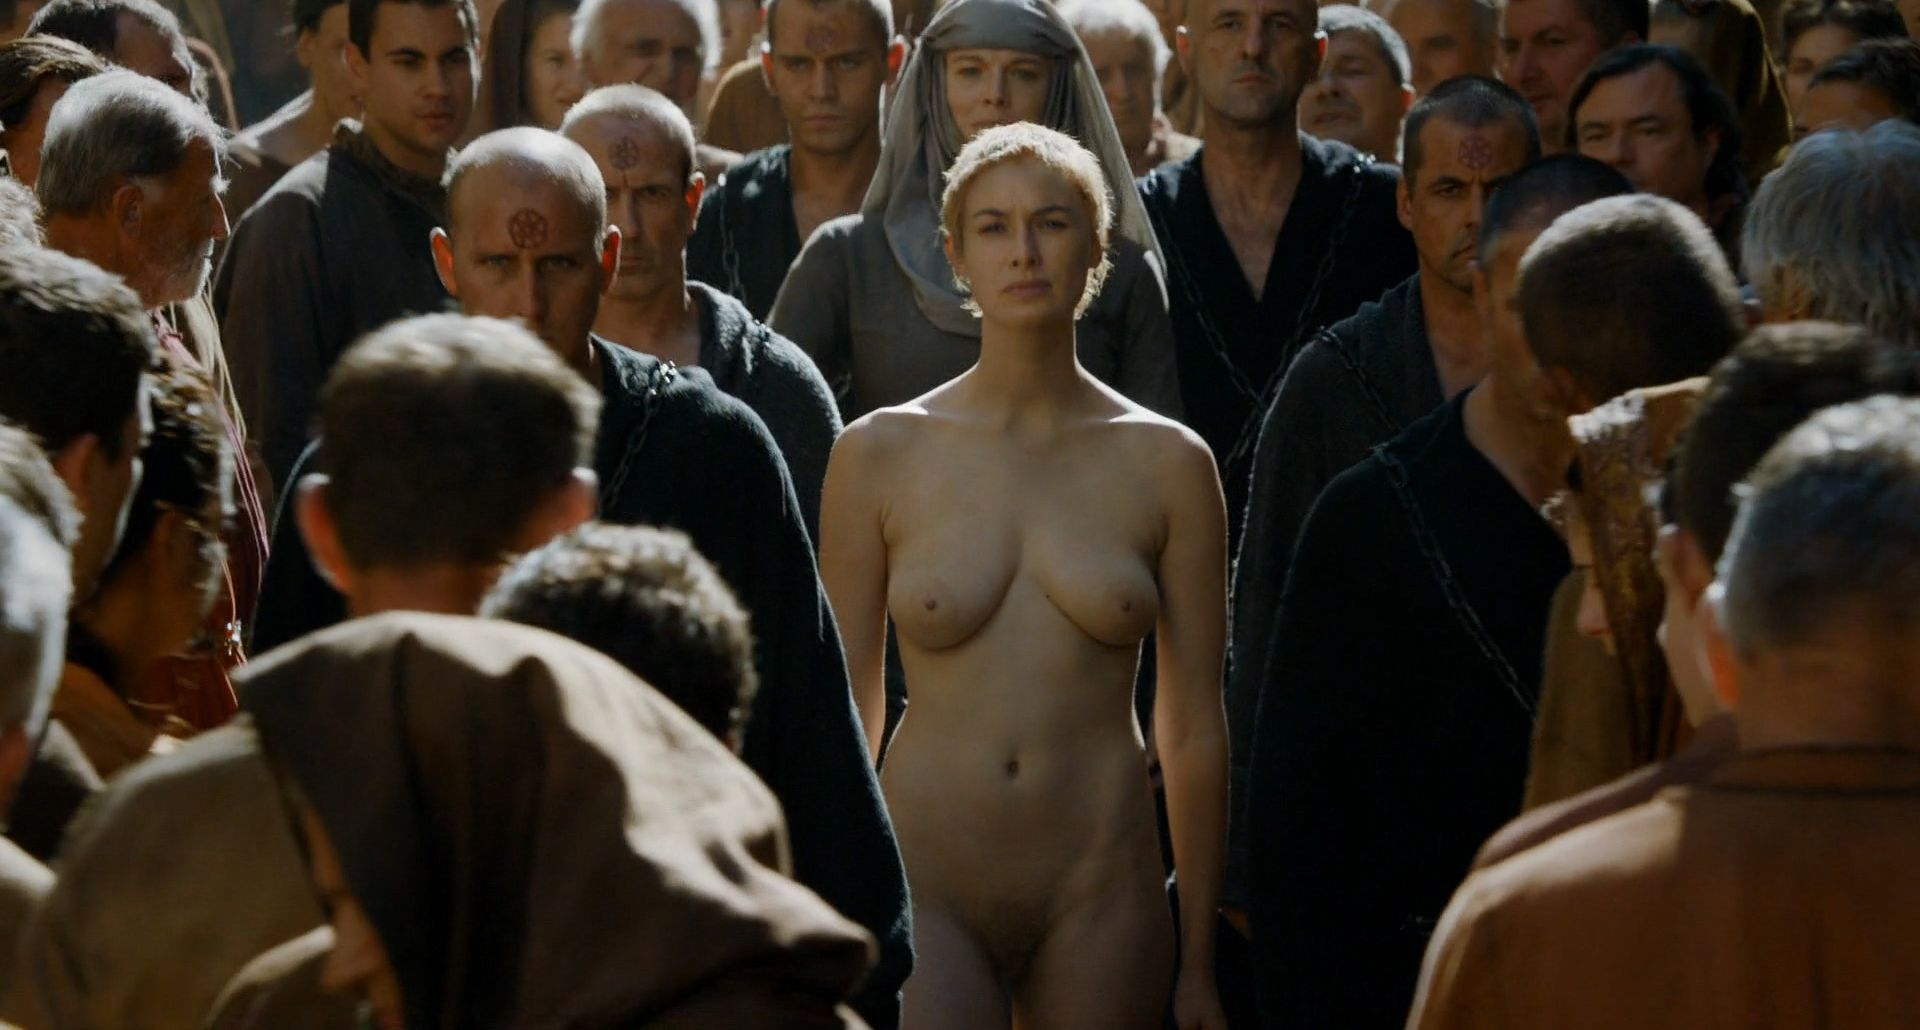 Lena headey nude sex scene in 300 movie scandalplanetcom 10